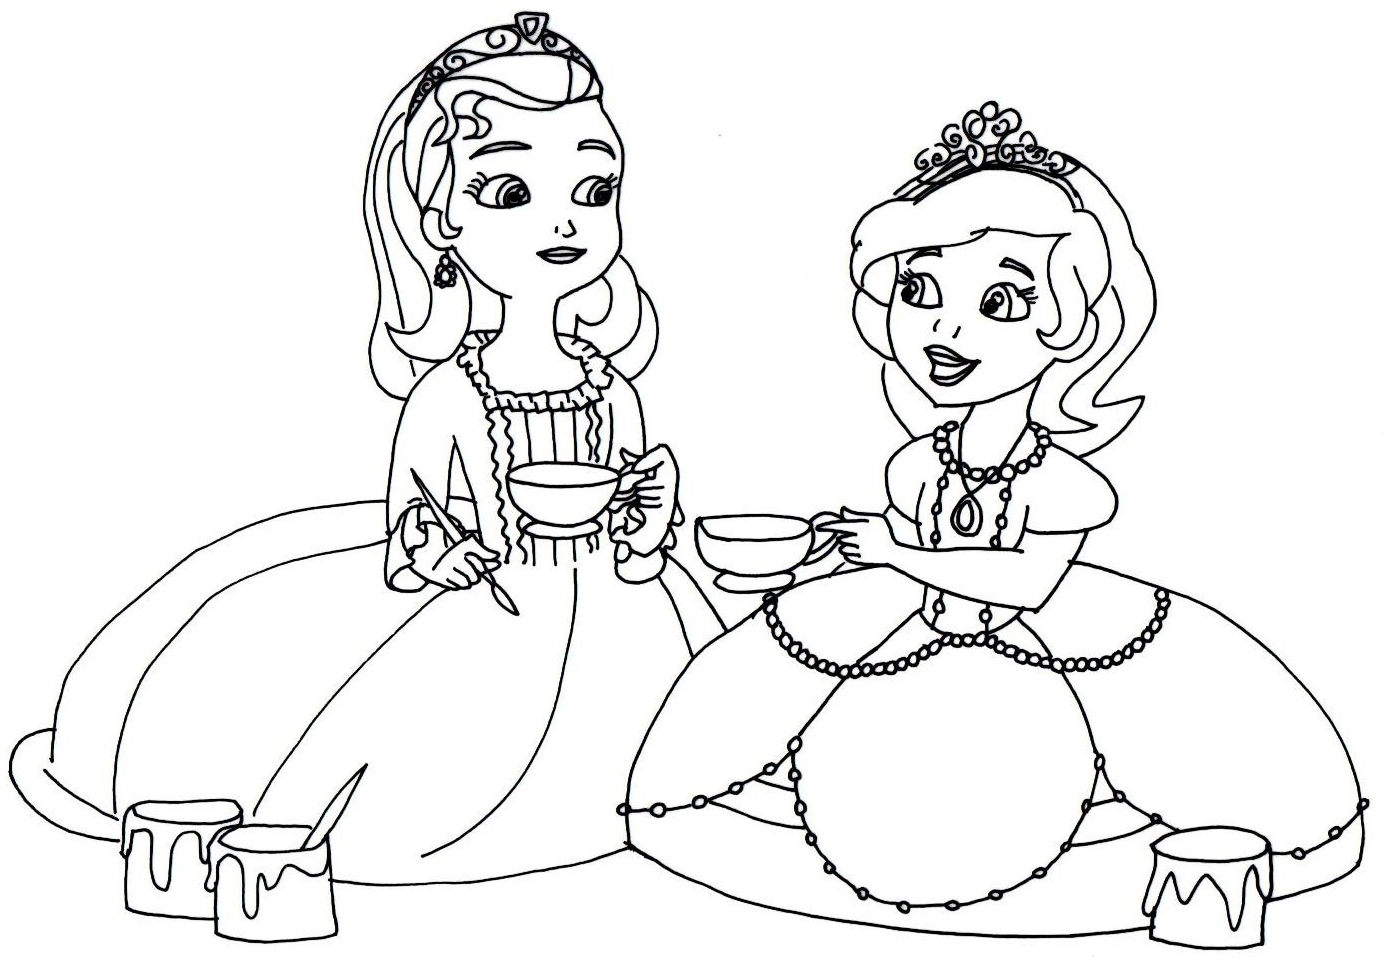 Sofia The First Coloring Pages: Tea Cups Party Sofia the First ...